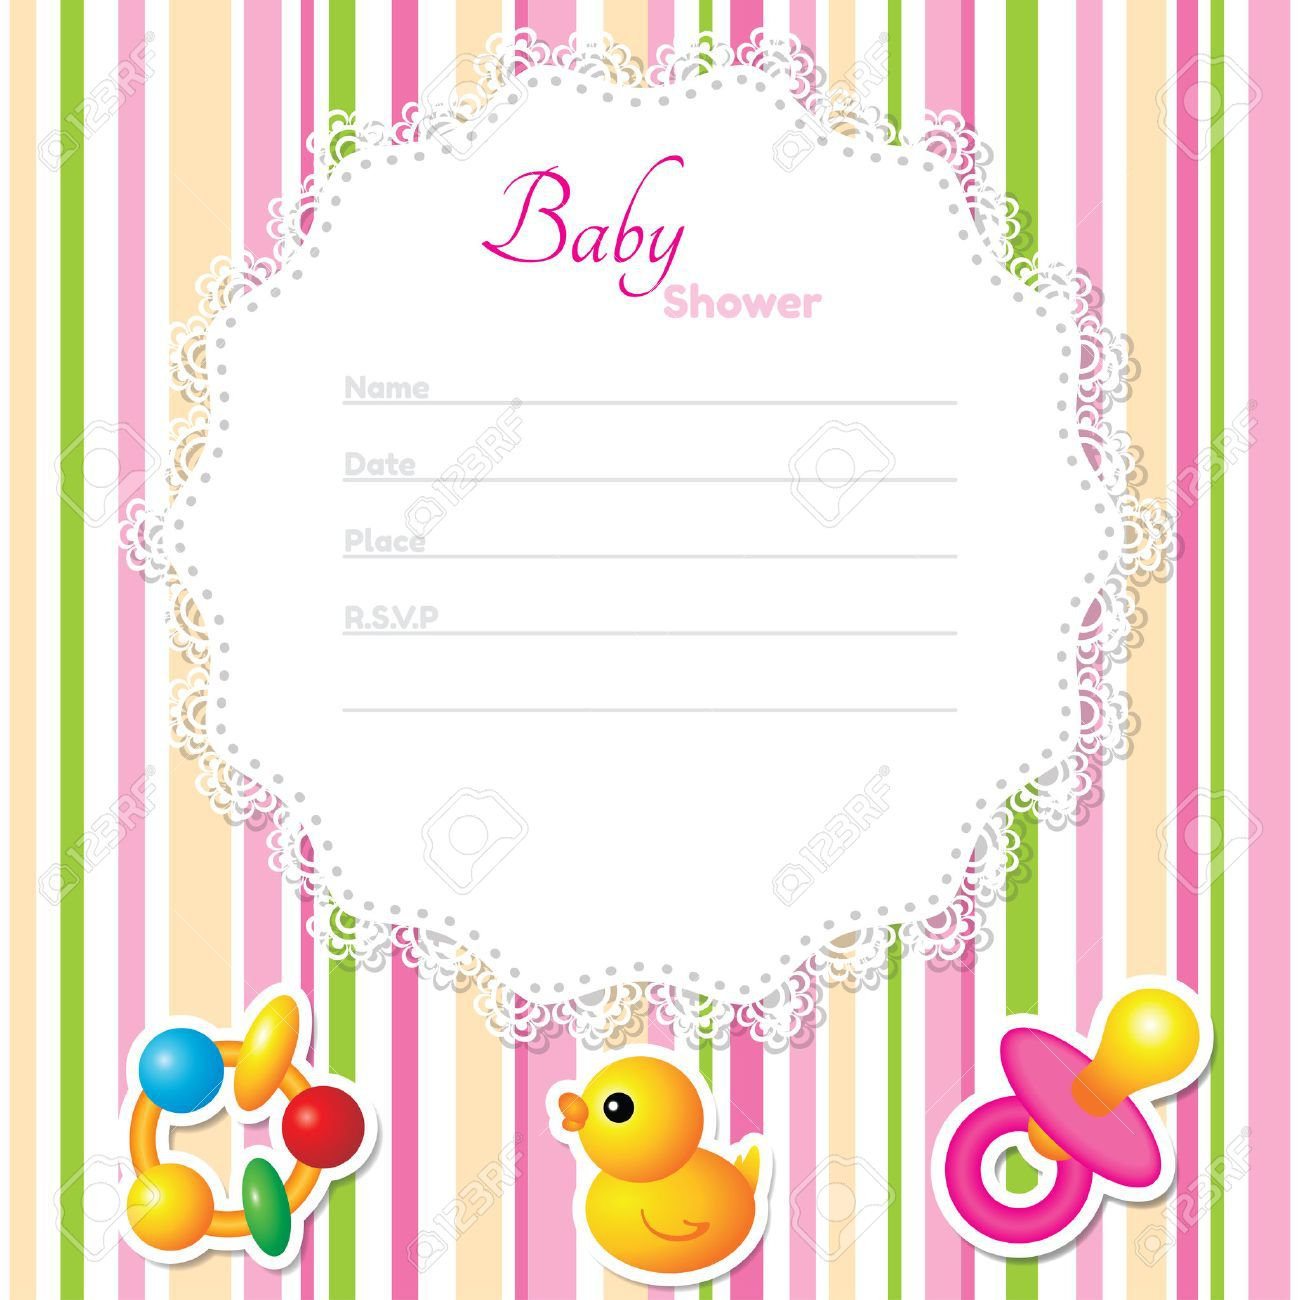 002 Awful Baby Shower Card Template Inspiration  Microsoft Word Invitation Design Online Printable FreeFull